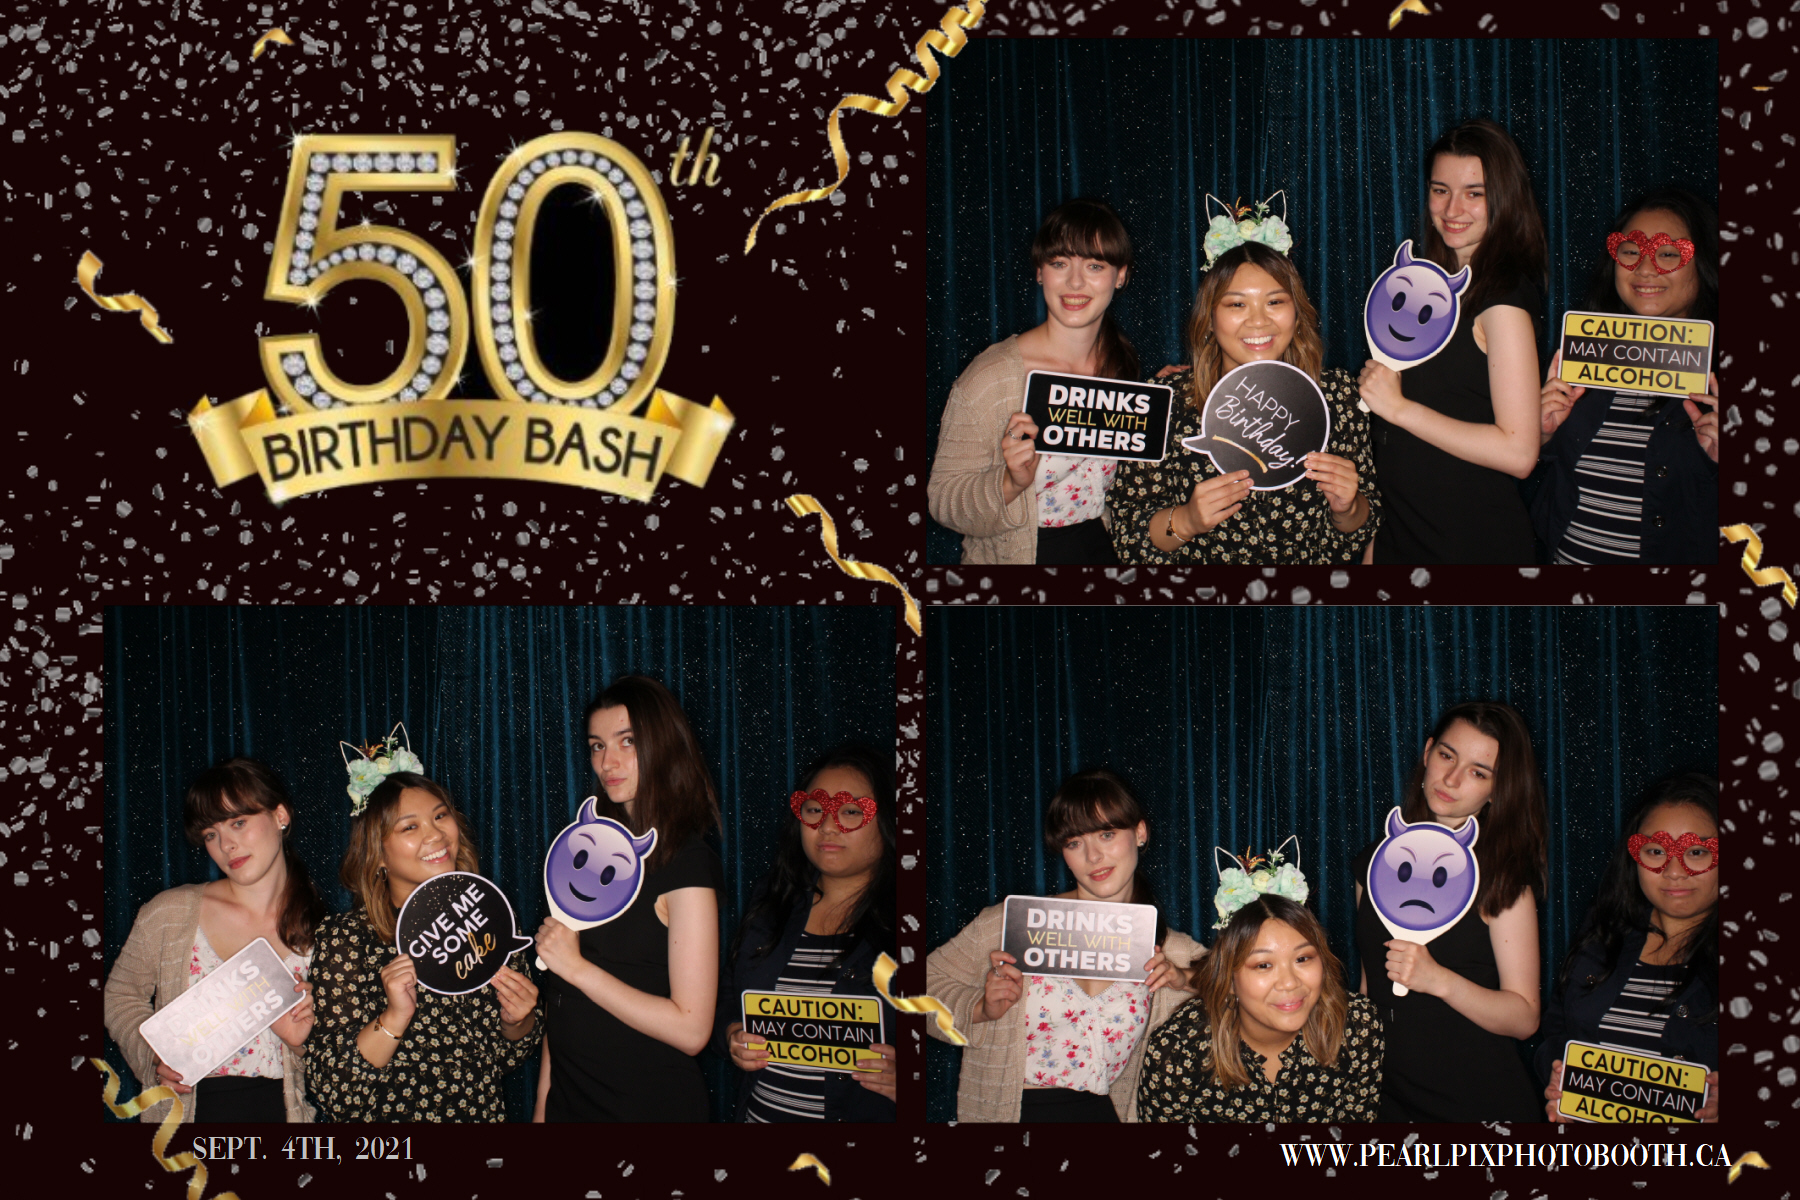 Peter_s 50th Bday_28